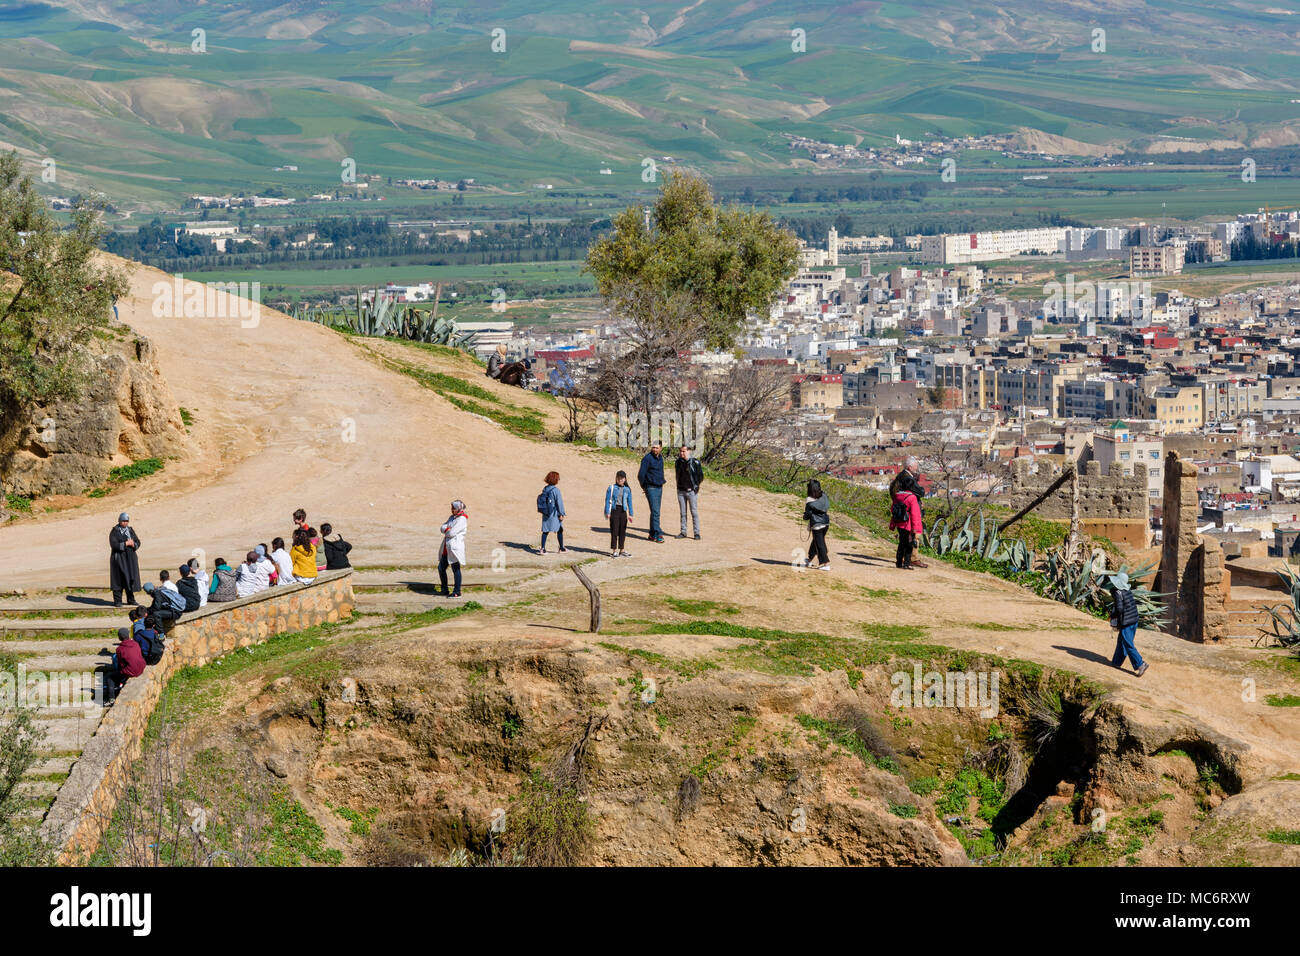 MOROCCO FES MEDINA OUTDOOR SCHOOL LESSON AND TOURISTS NEAR THE TOMB OF THE MERENIDS OVERLOOKING THE CITY - Stock Image